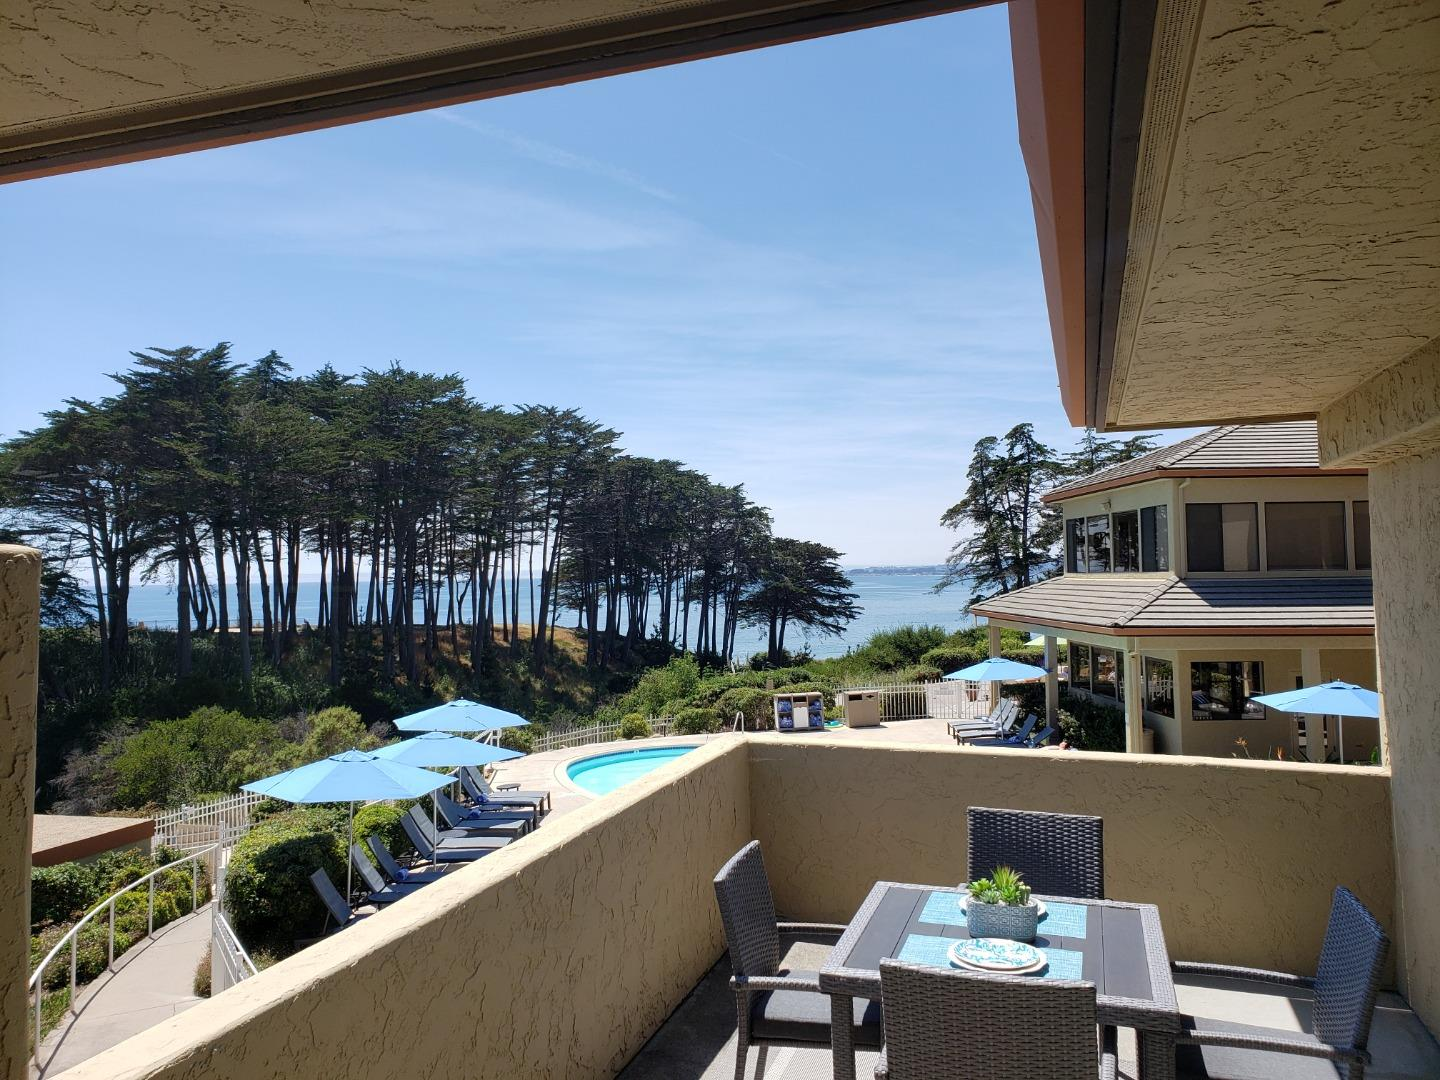 209 Seascape Resort DR Aptos, CA 95003